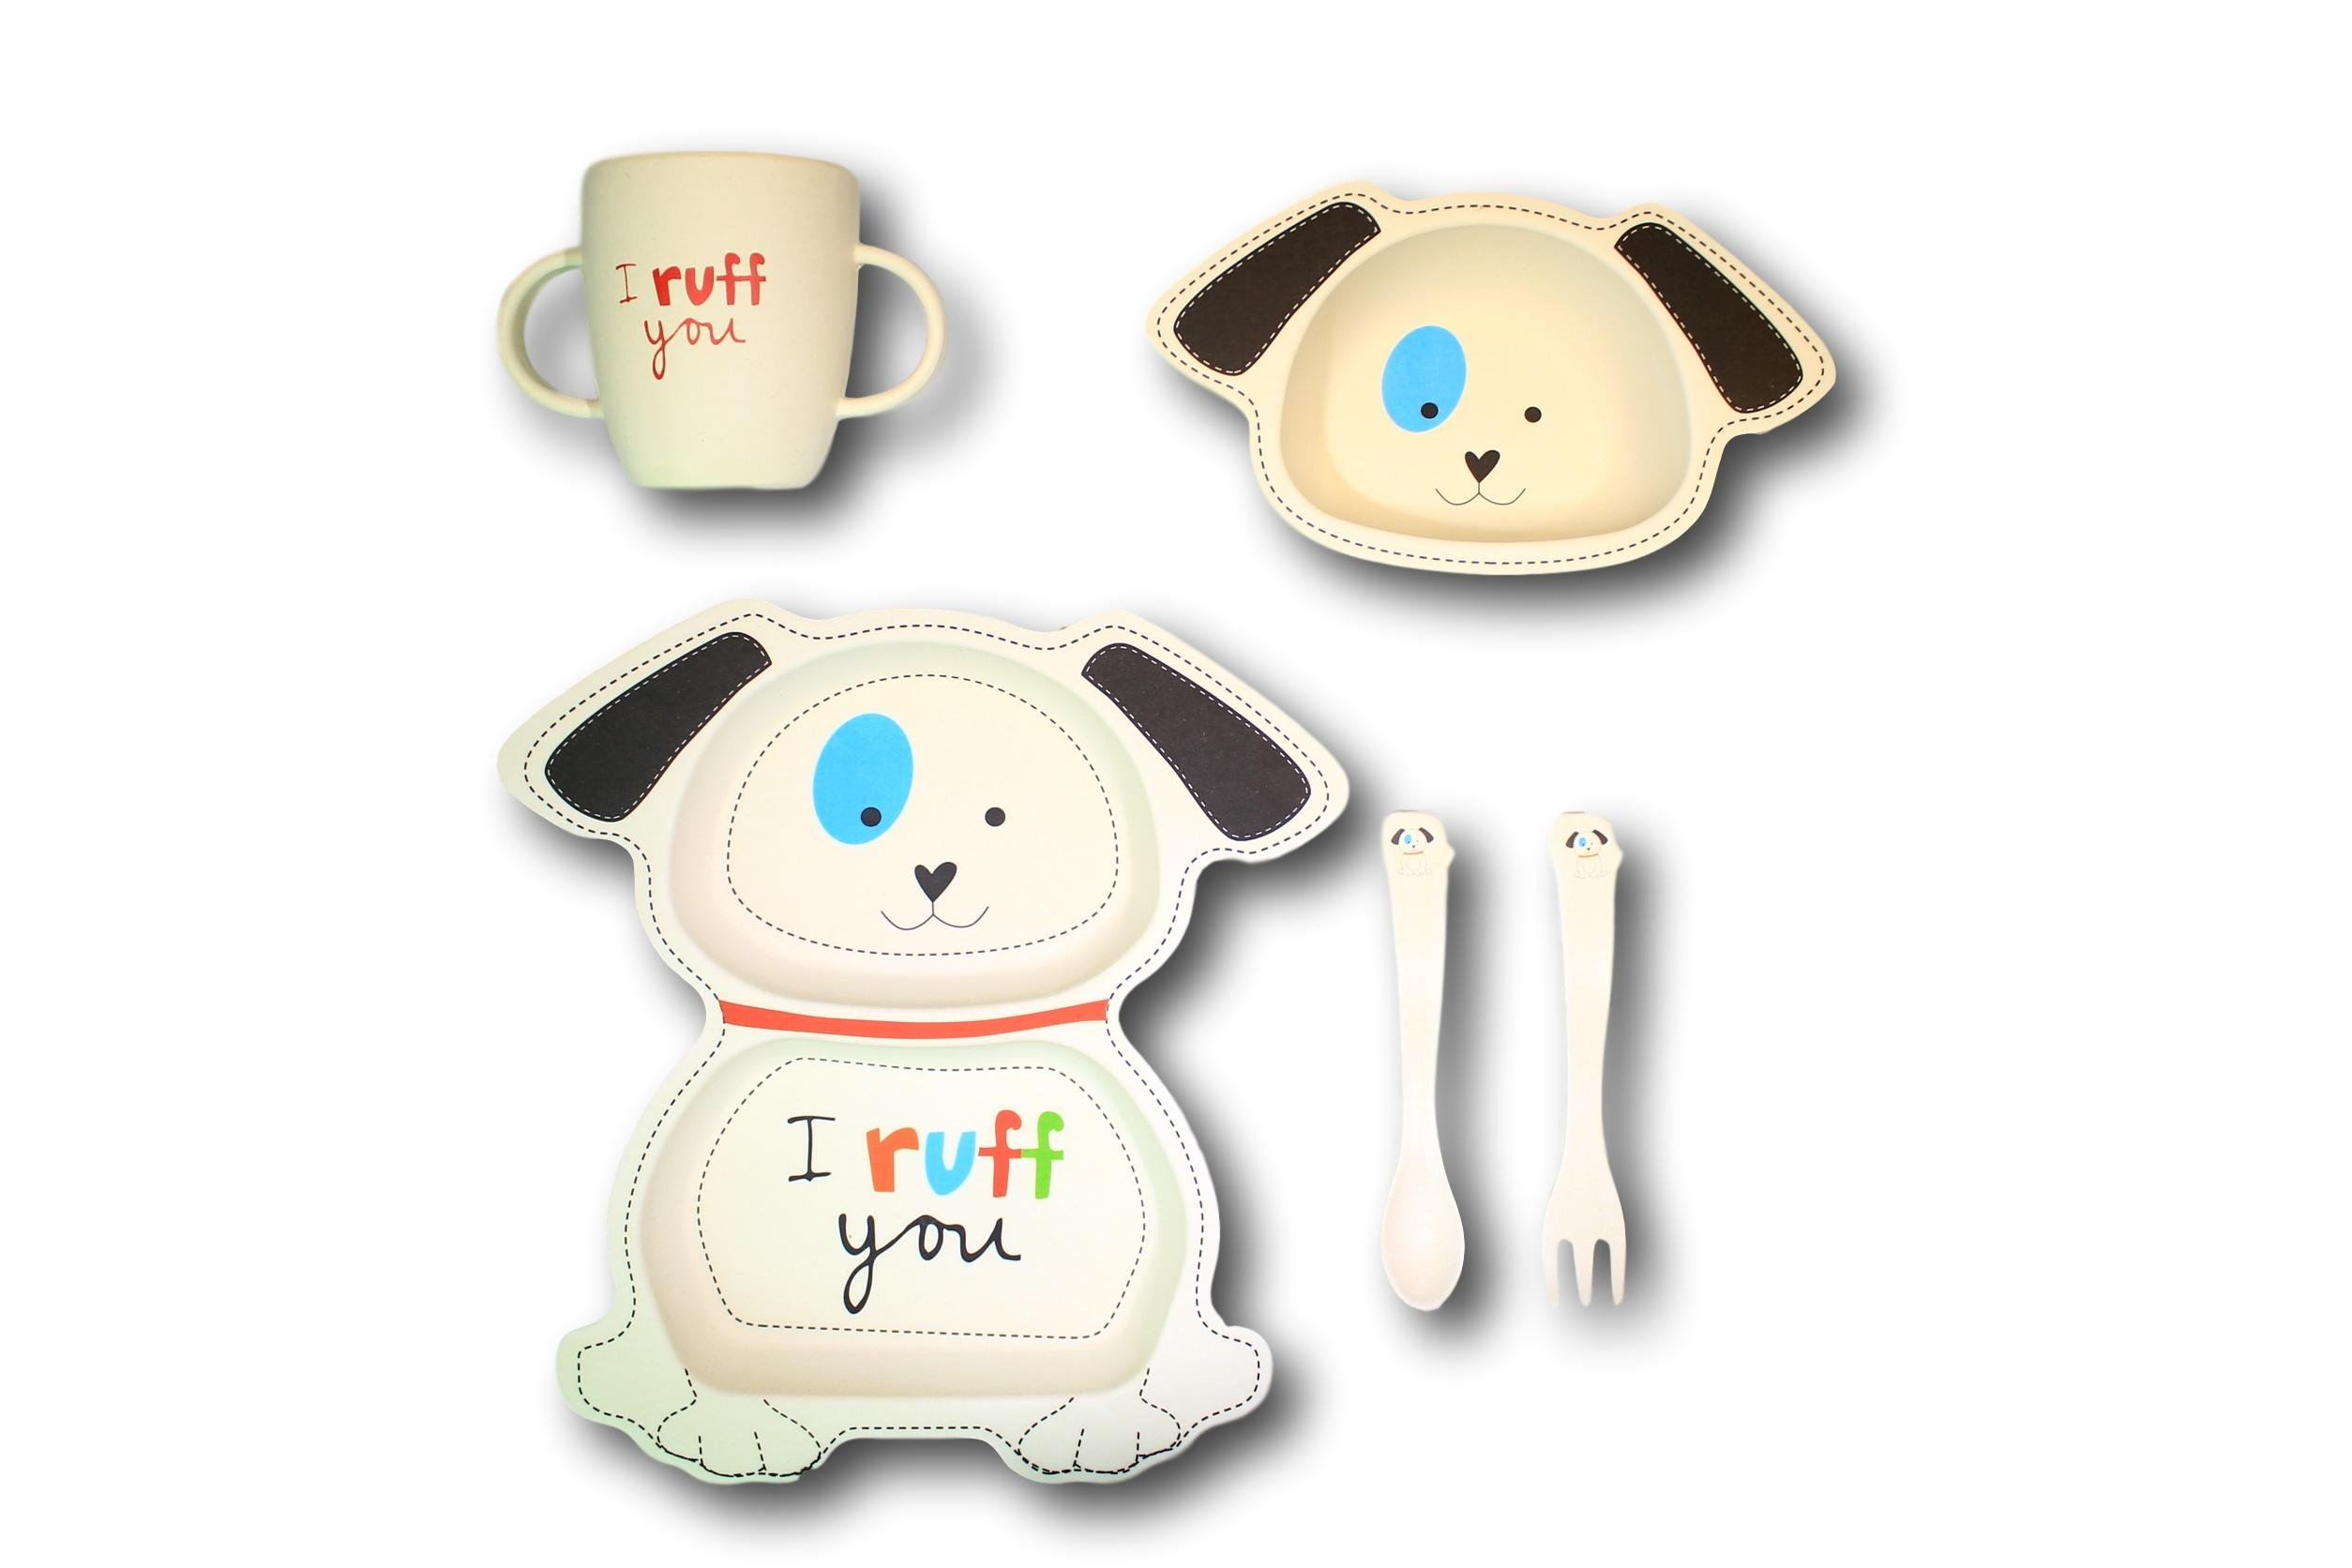 Tiny Footprint Bingo Dog 5-piece Bamboo Dinner Set by Tiny Footprint